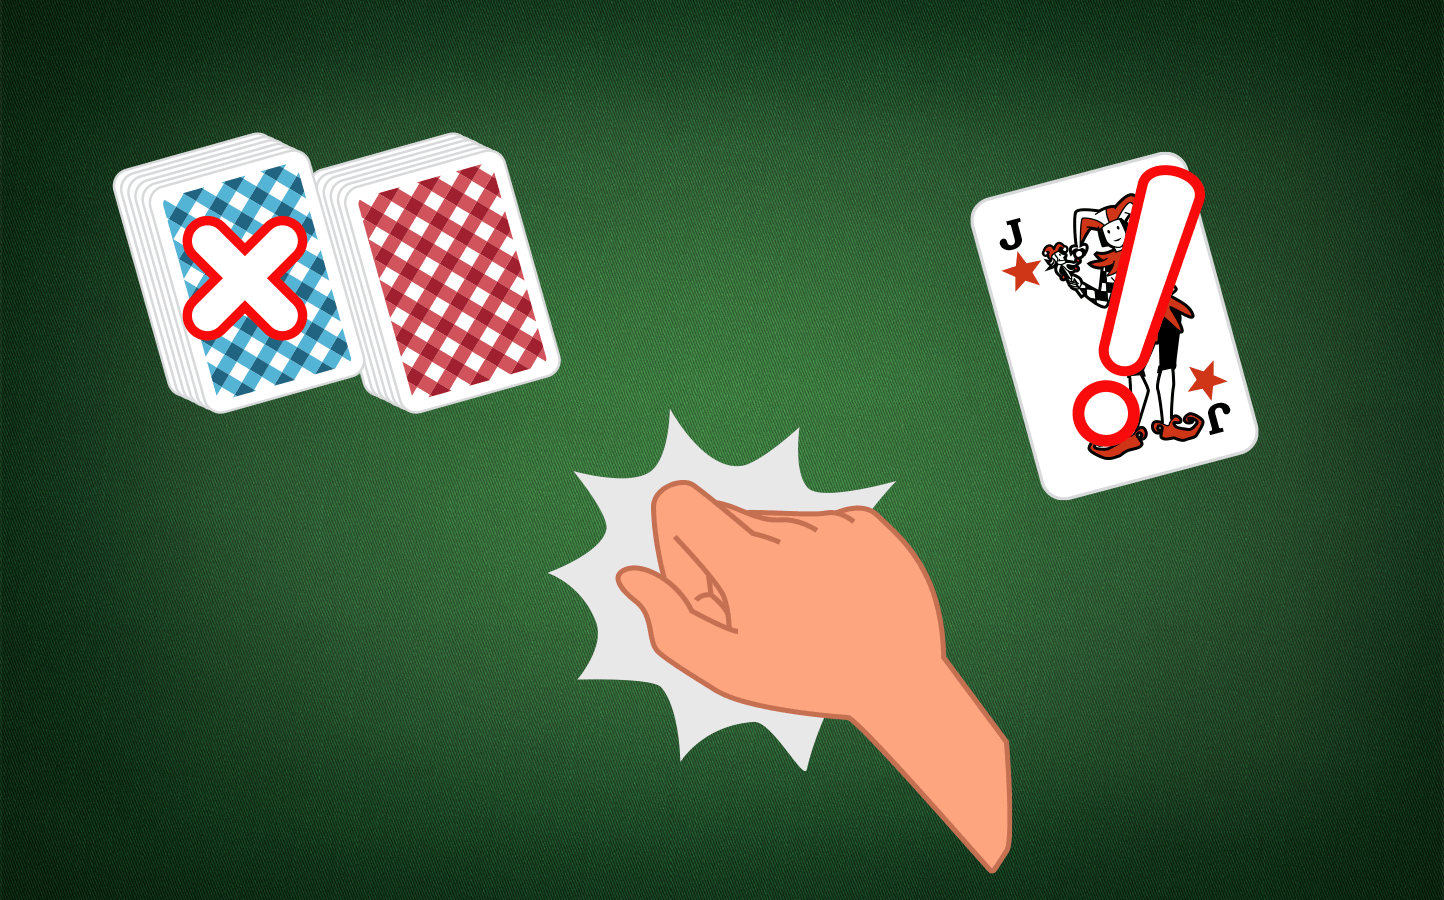 Lesson 2: Talk About Your Rummy Rules